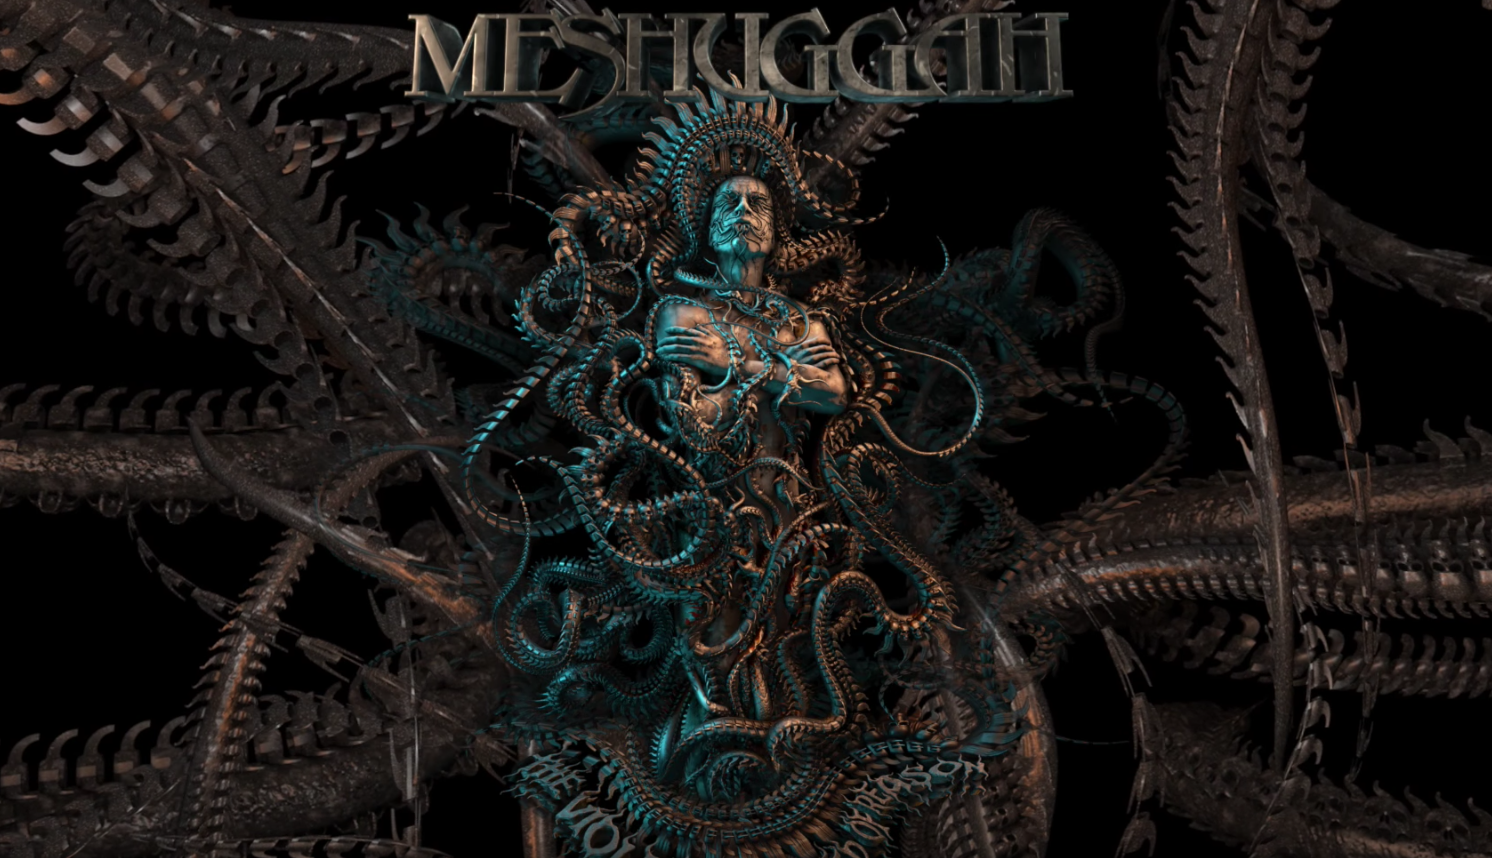 Meshuggah announce new album, 'The Violent Sleep Of Reason'